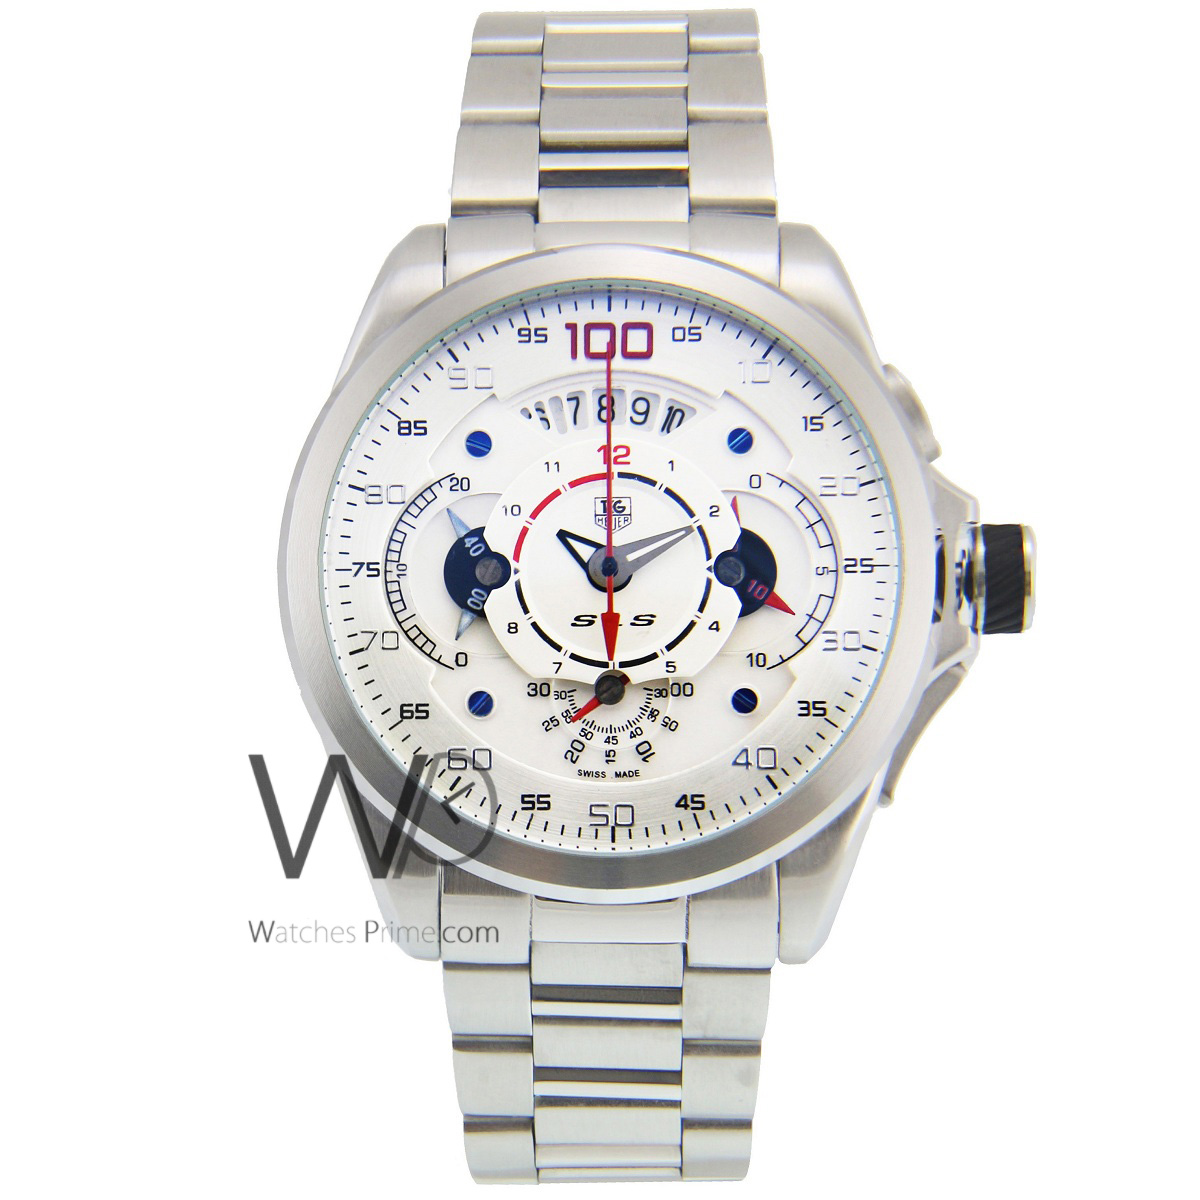 81cd9bcd62e TAG HEUER GRAND CARRERA MERCEDES BENZ SLS CHRONOGRAPH WATCH WHITE WITH  STAINLESS STEEL SILVER BELT. SKU  48. Roll ...